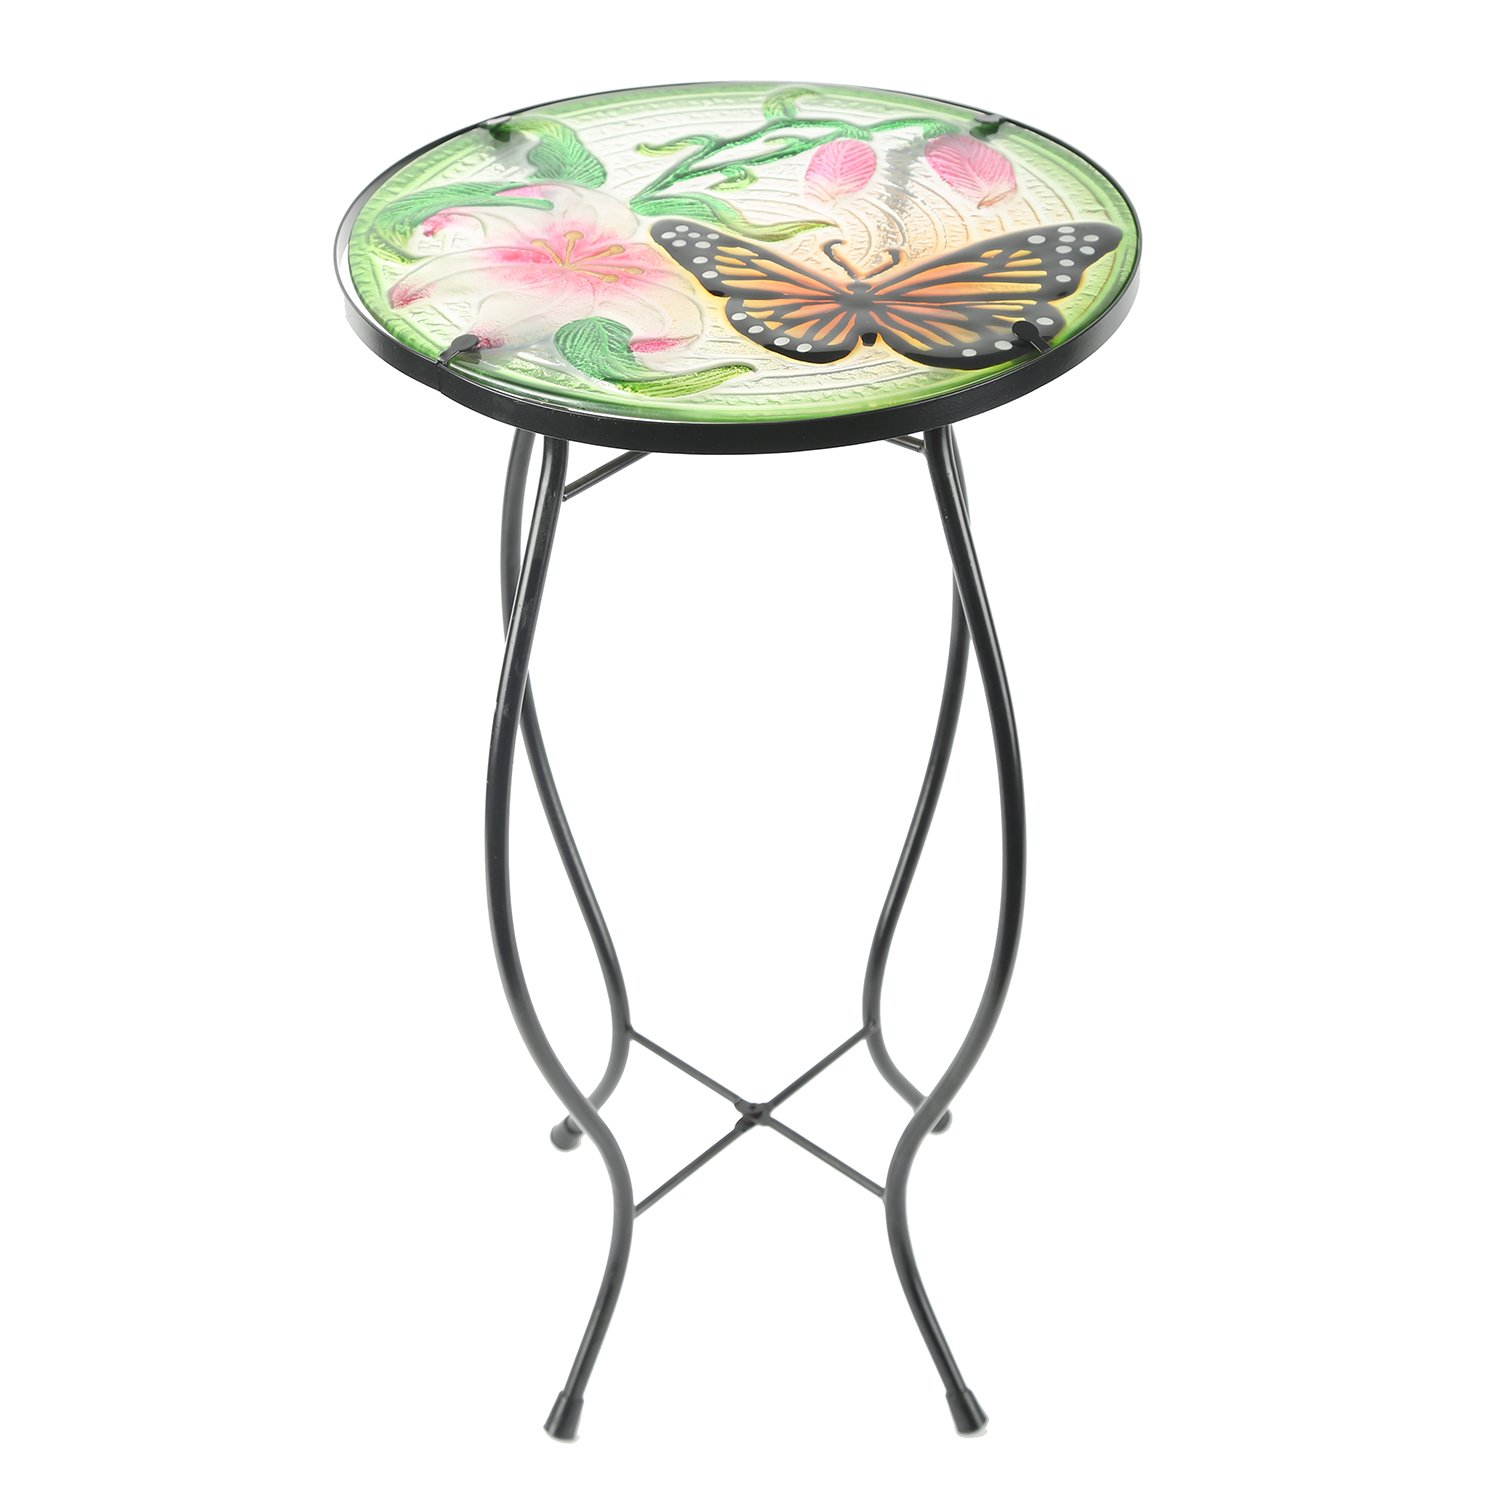 cedar home side table outdoor garden patio metal accent cbl pink desk with round hand painted glass bedroom furniture manufacturers small green bronze monarch hall console